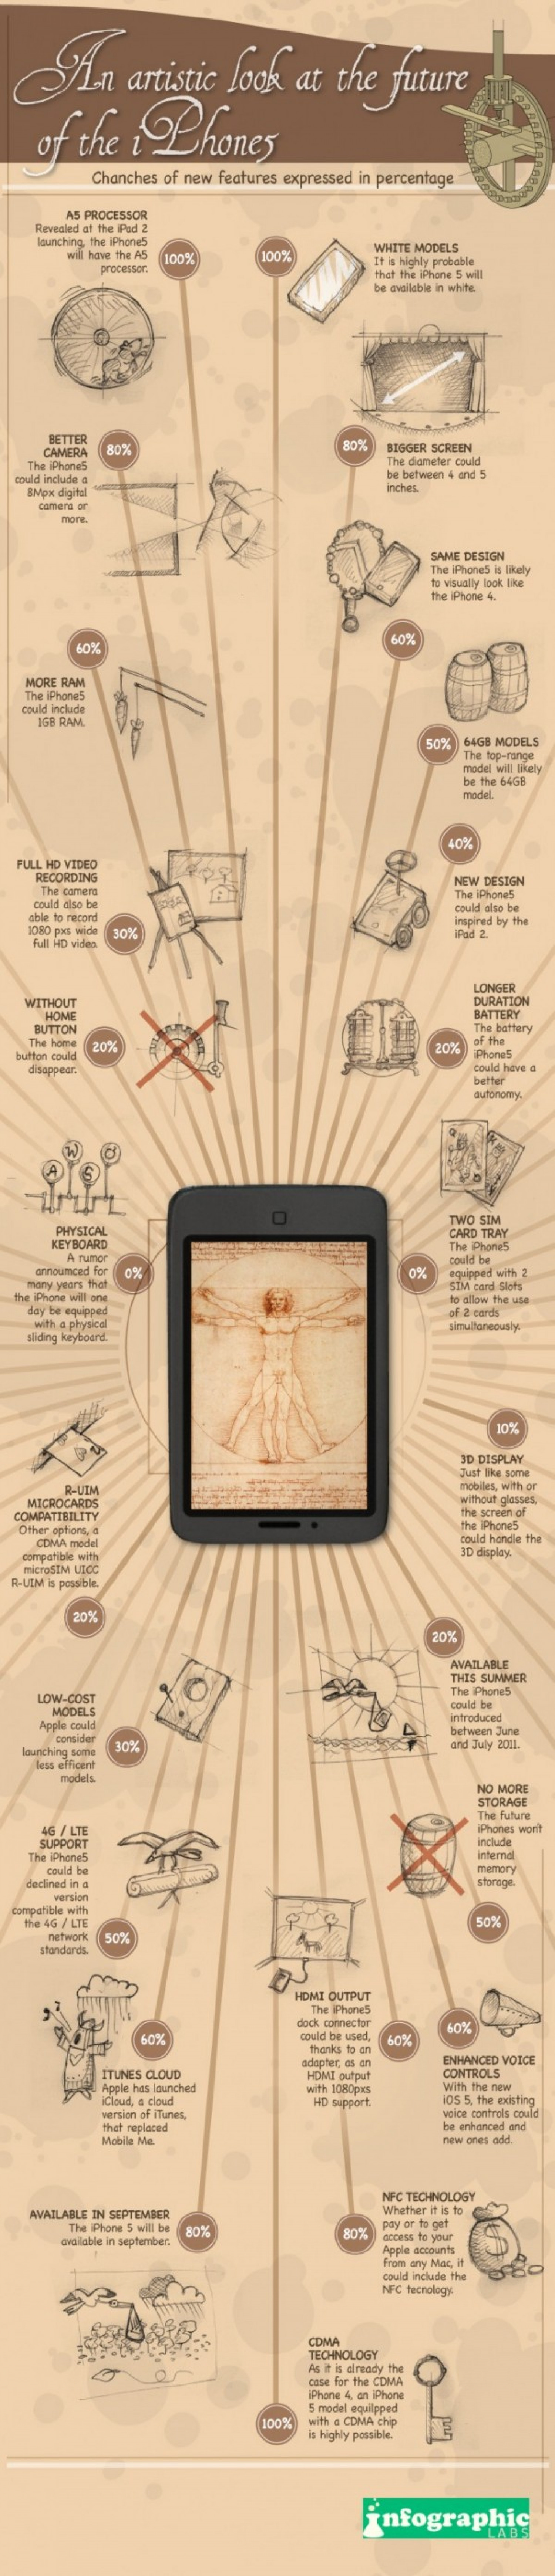 An Artistic Look at the Future of the IPhone Infographic